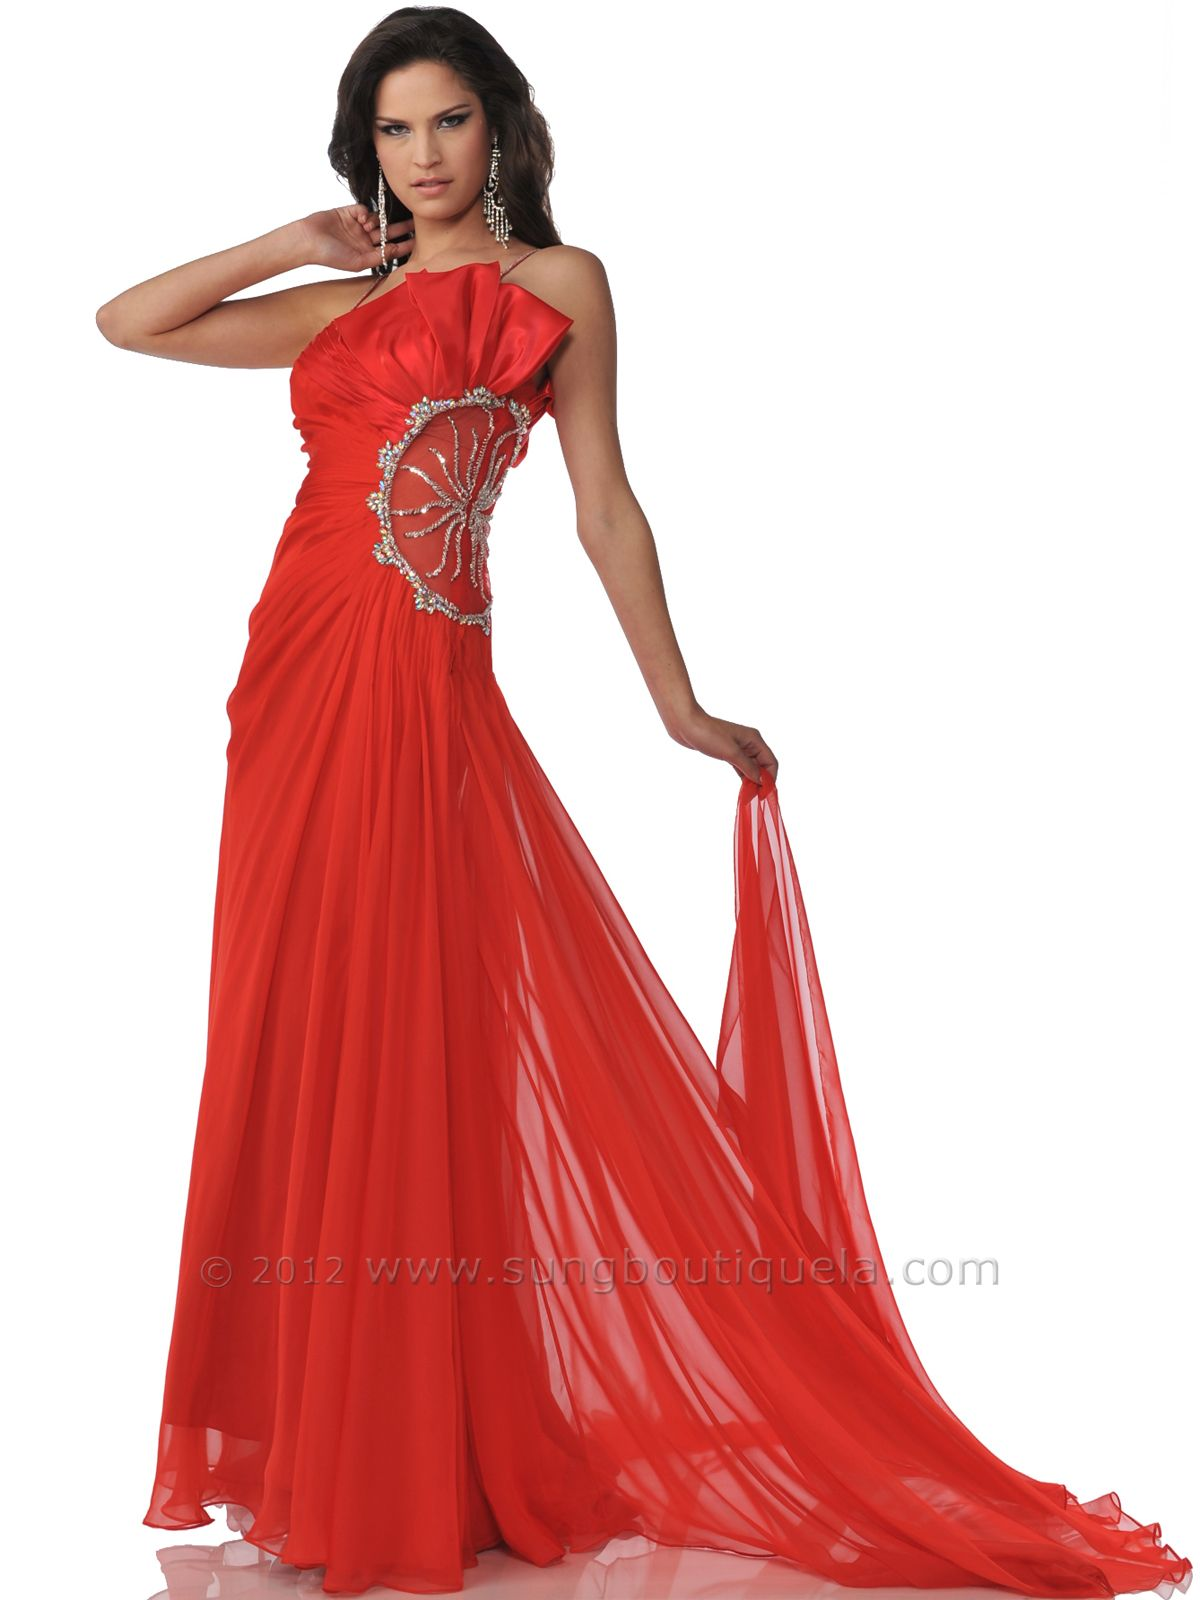 1000  images about Red Evening Dresses on Pinterest | Red ...